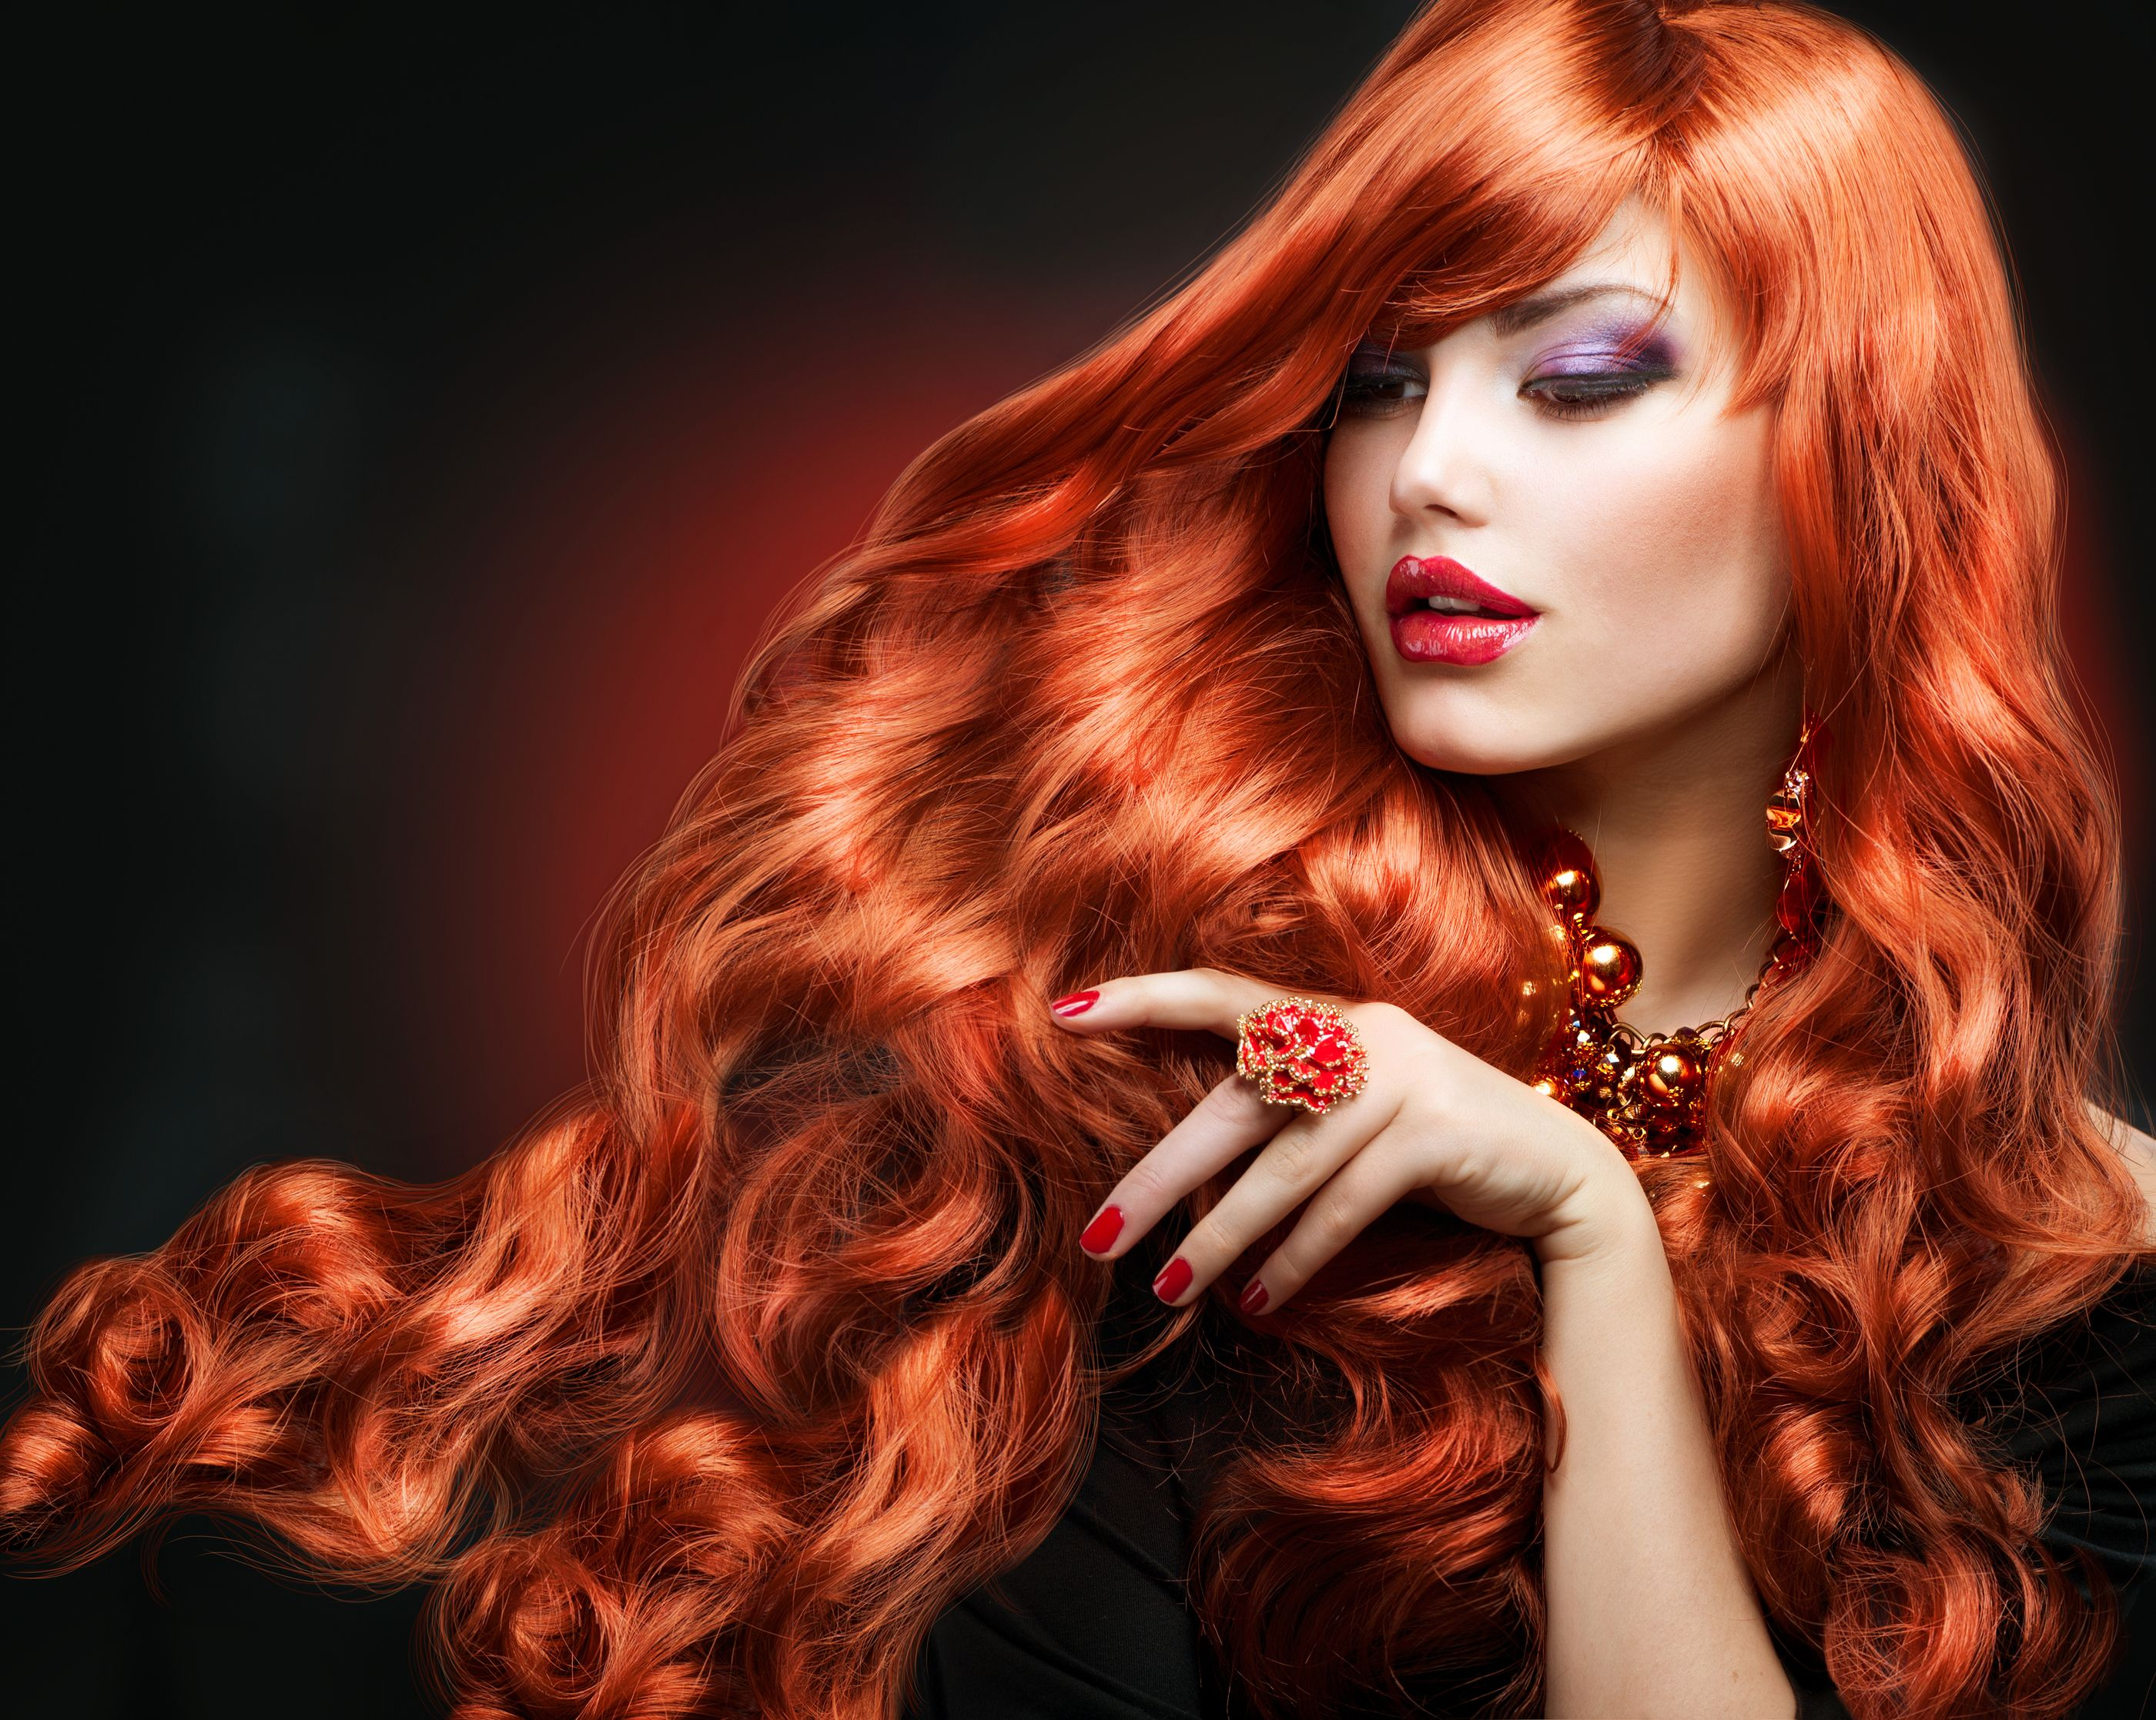 Free Wallpaper - Free Photography wallpaper - Women Hairstyle 1 ...